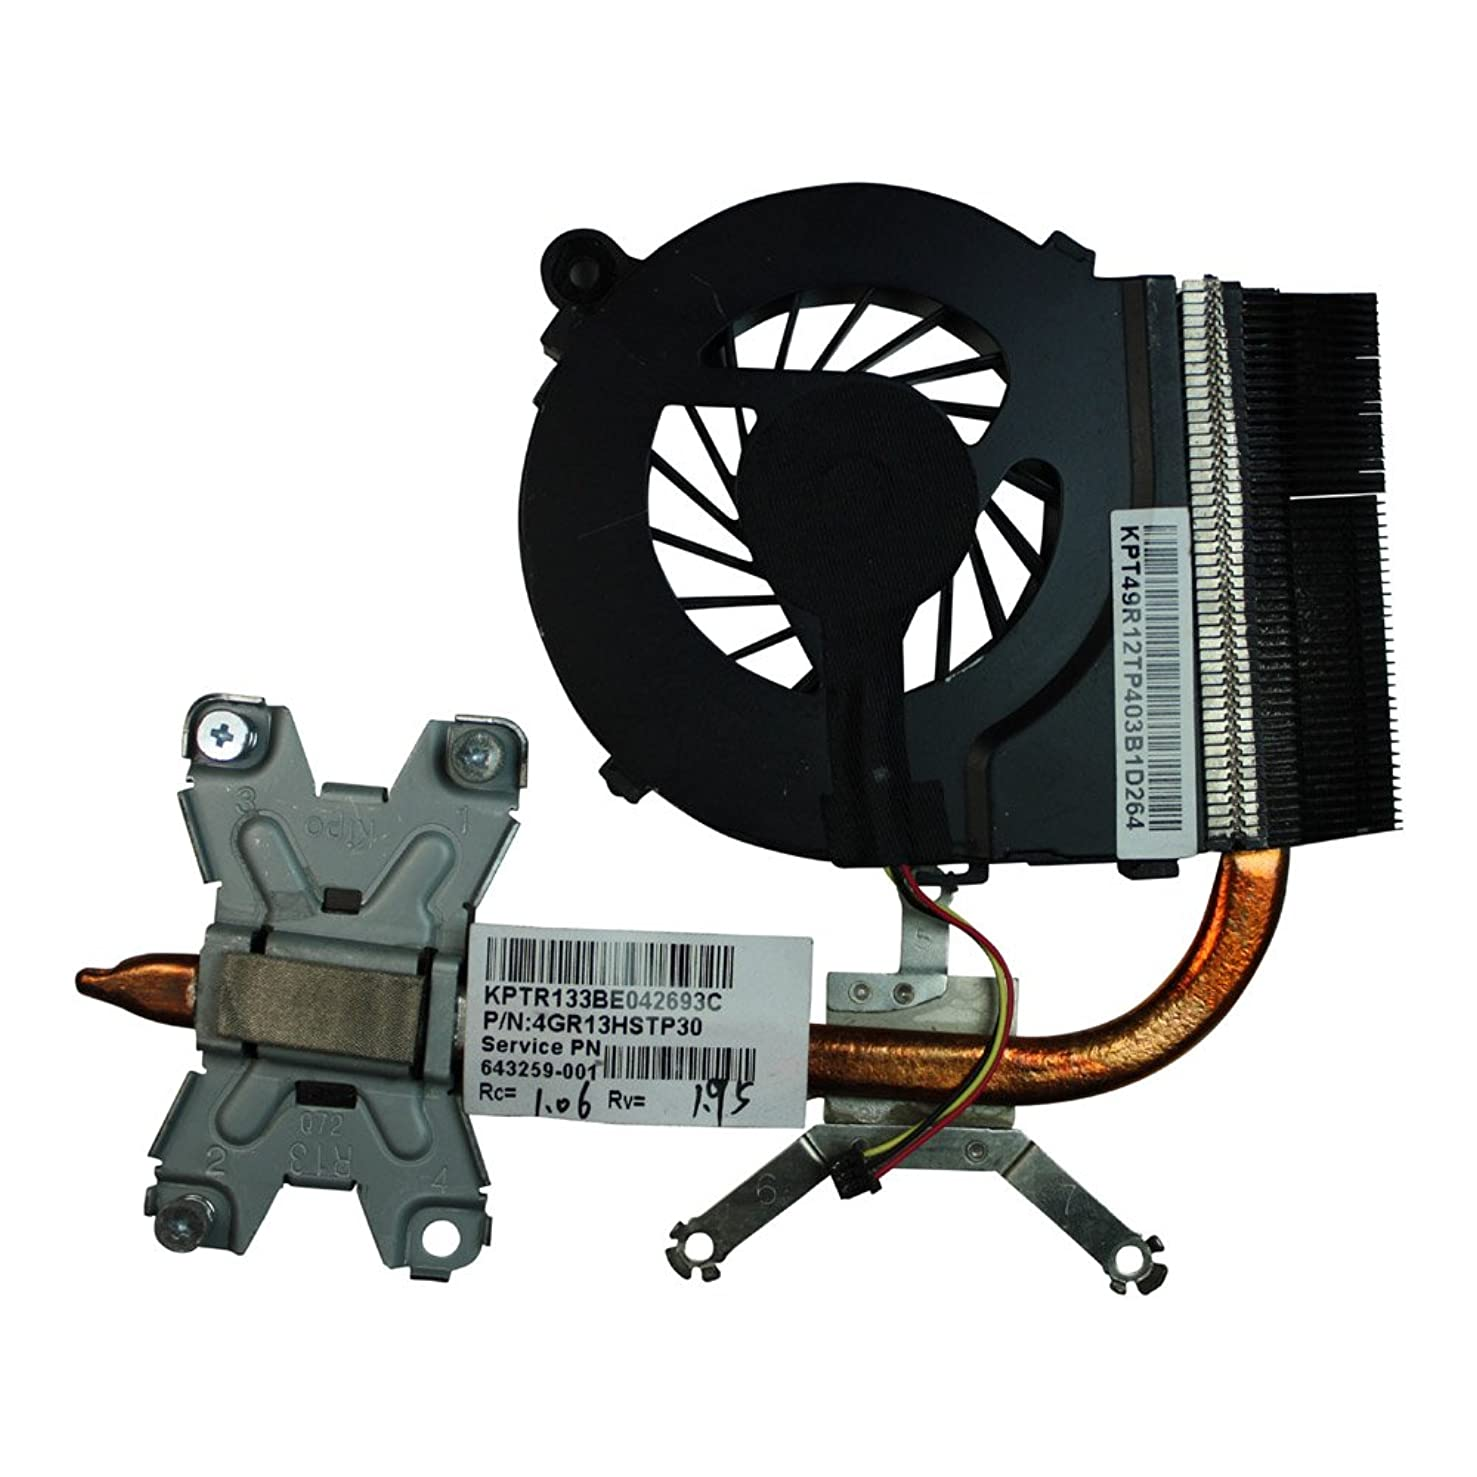 Power4Laptops Version 1 (Please Check The Picture) Compatible Laptop Fan with Heatsink Fits HP 643259-001, HP 646578-001, HP Pavilion G4-1000, HP Pavilion G4-1001TU, HP Pavilion G4-1001TX